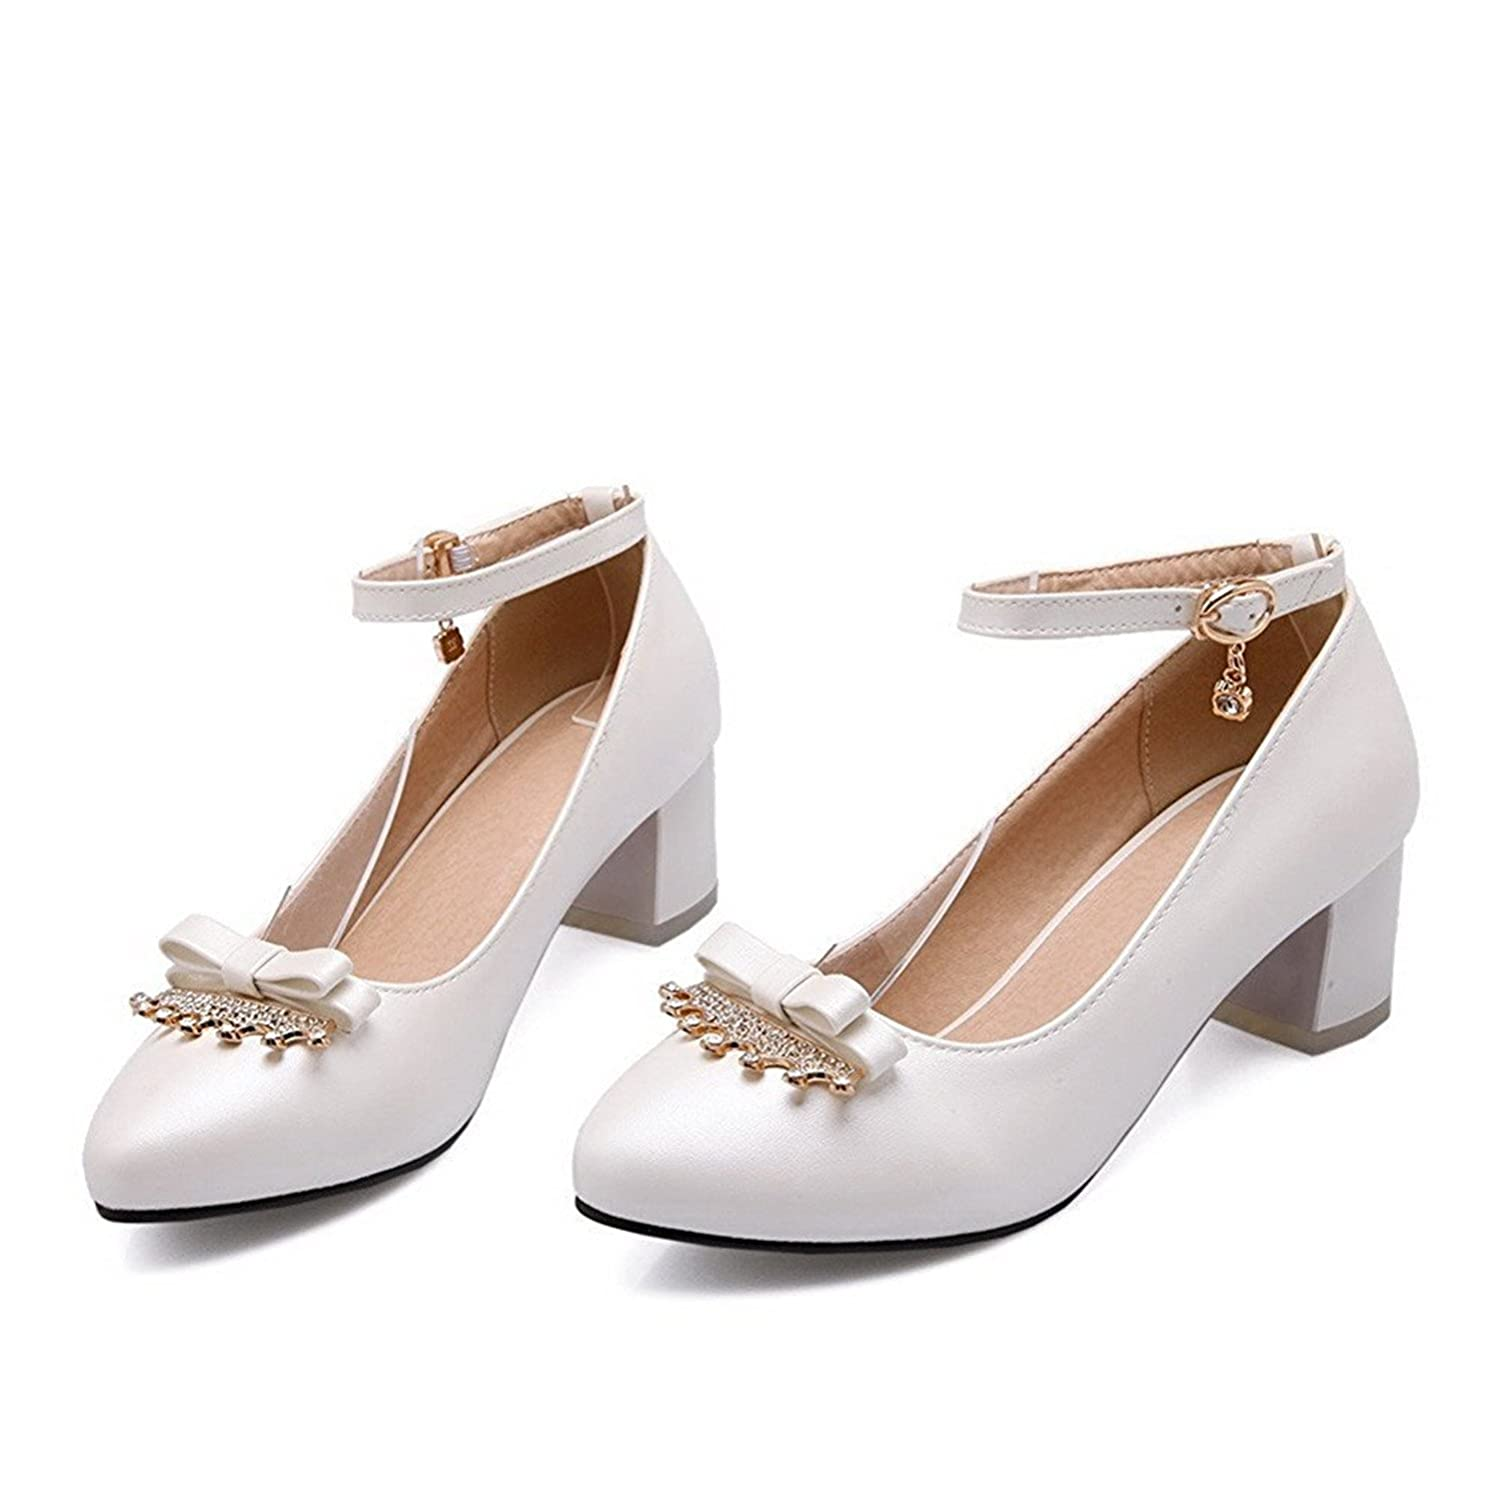 Yingzuzeng Womens Buckle Pointed Closed Toe Kitten Heels Solid Pumps-Shoes Fashionable